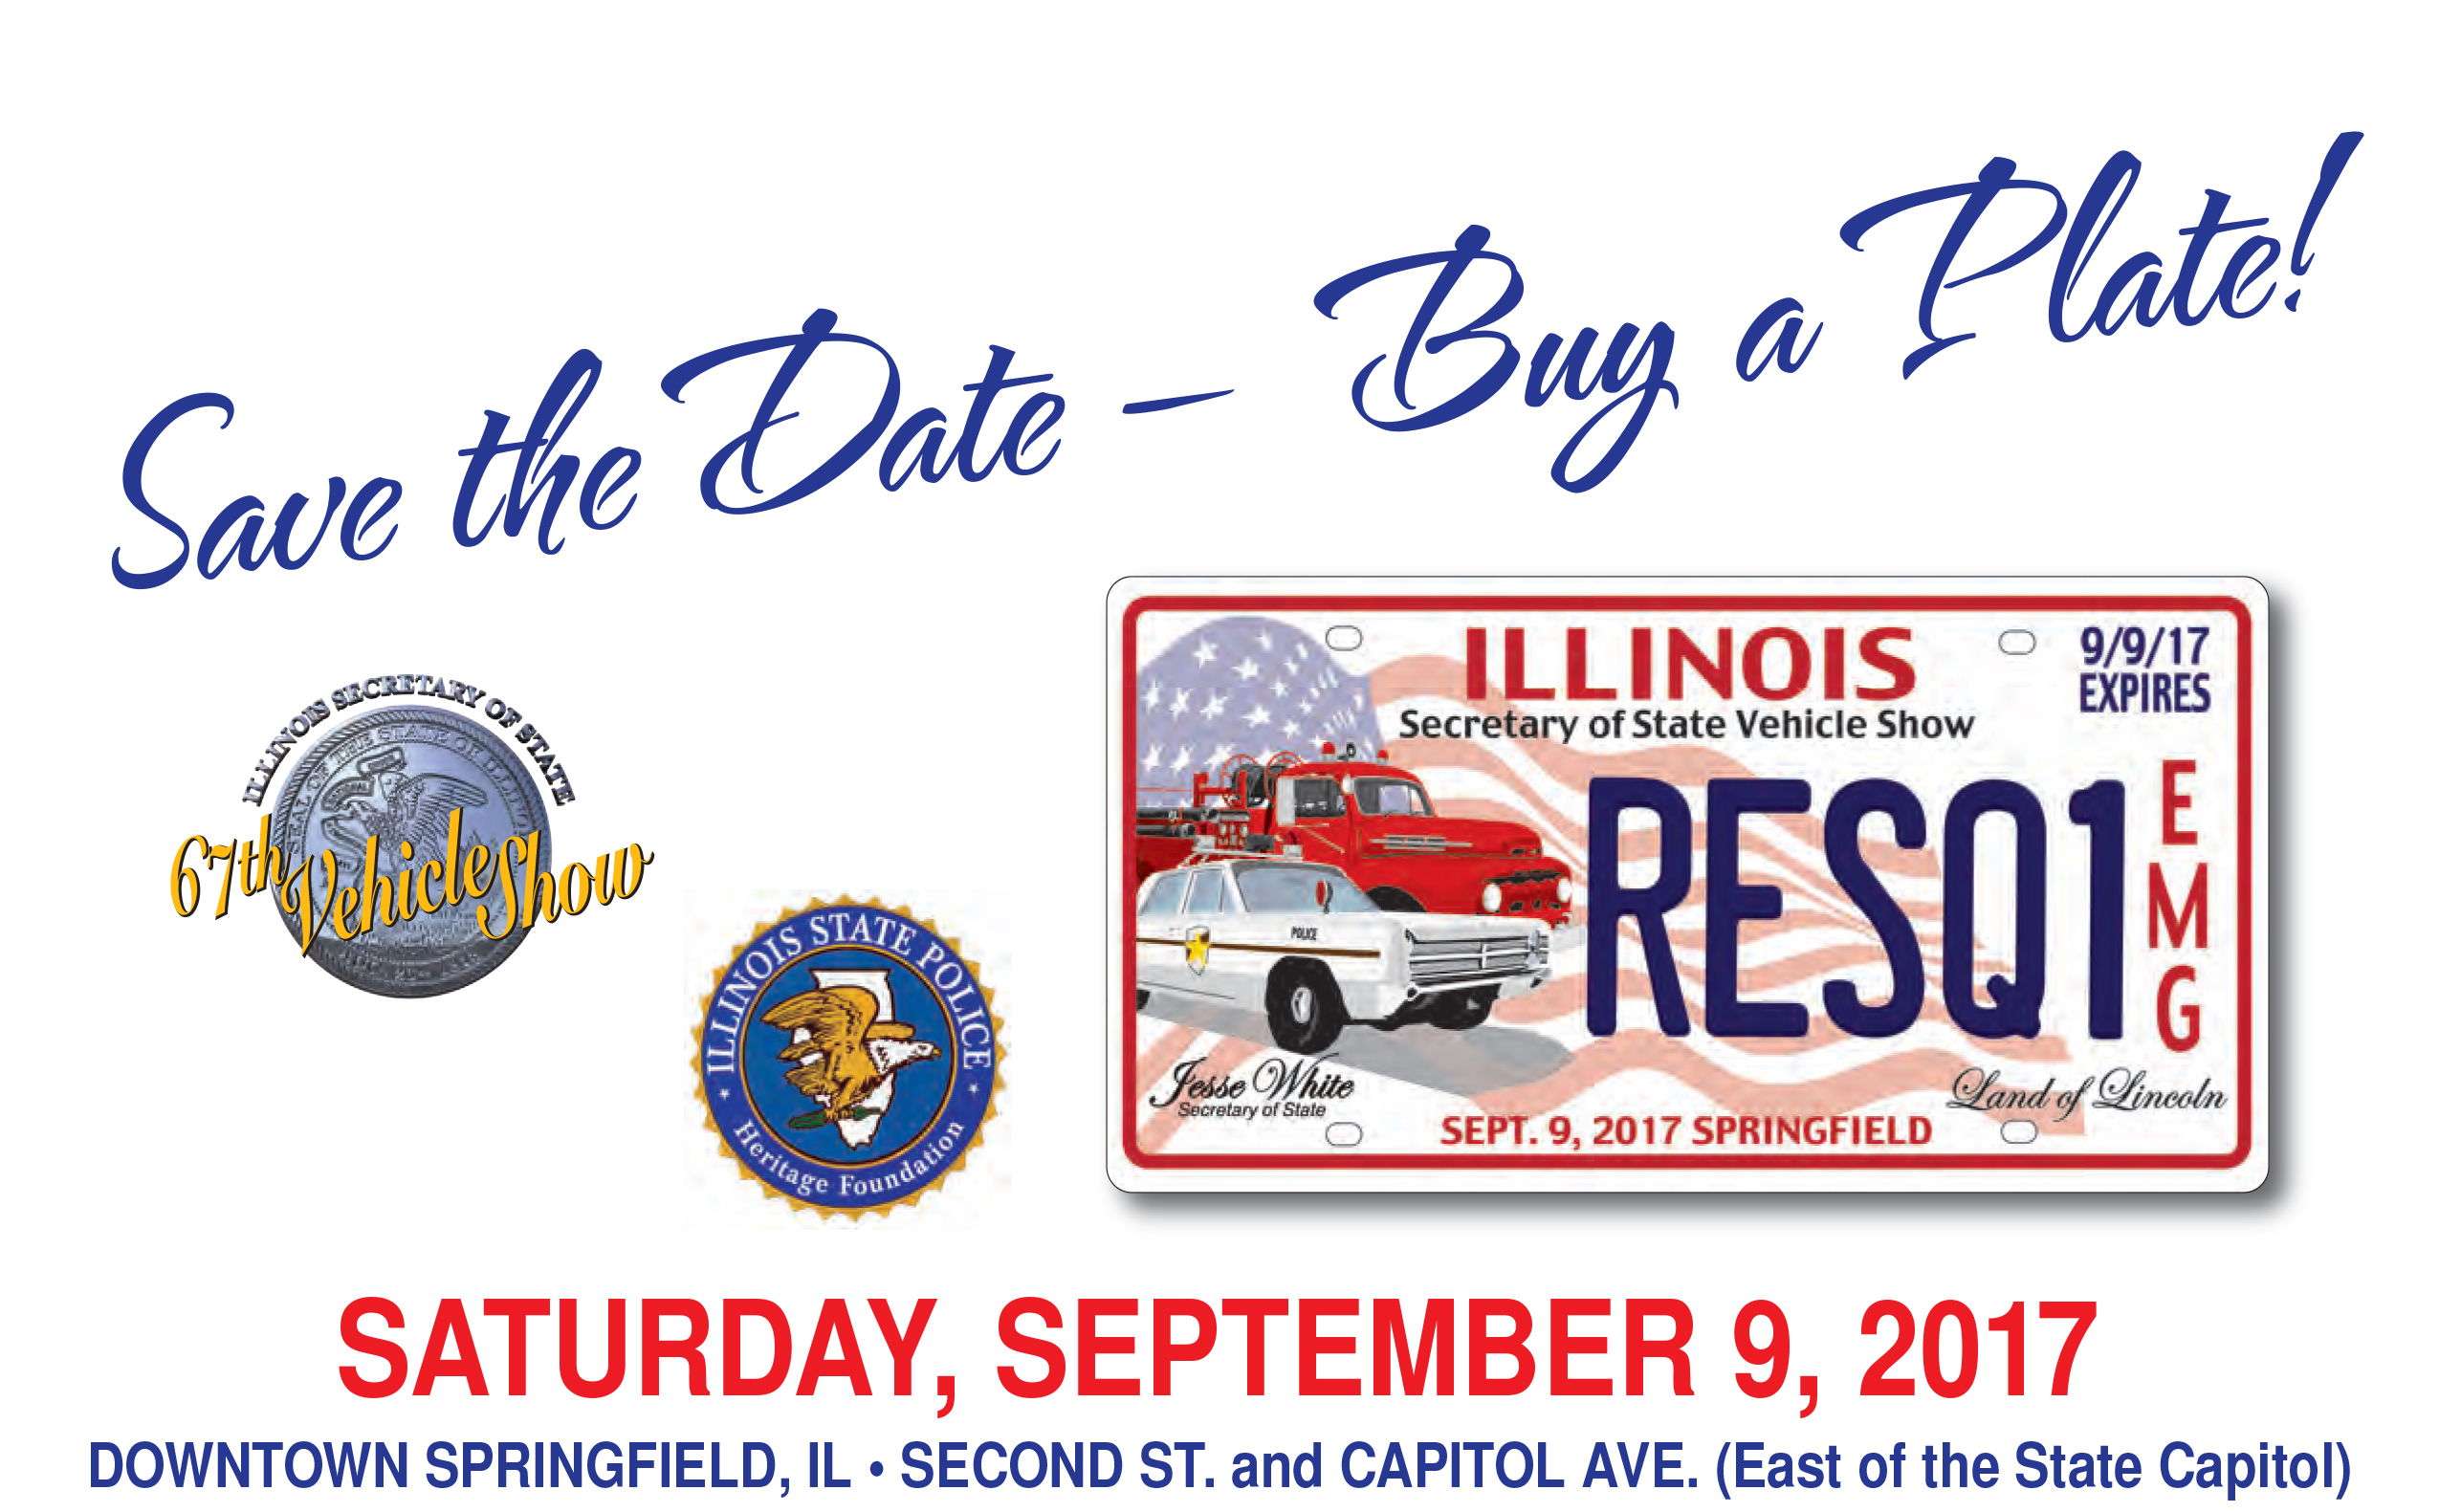 IL commemorative emergency license plate